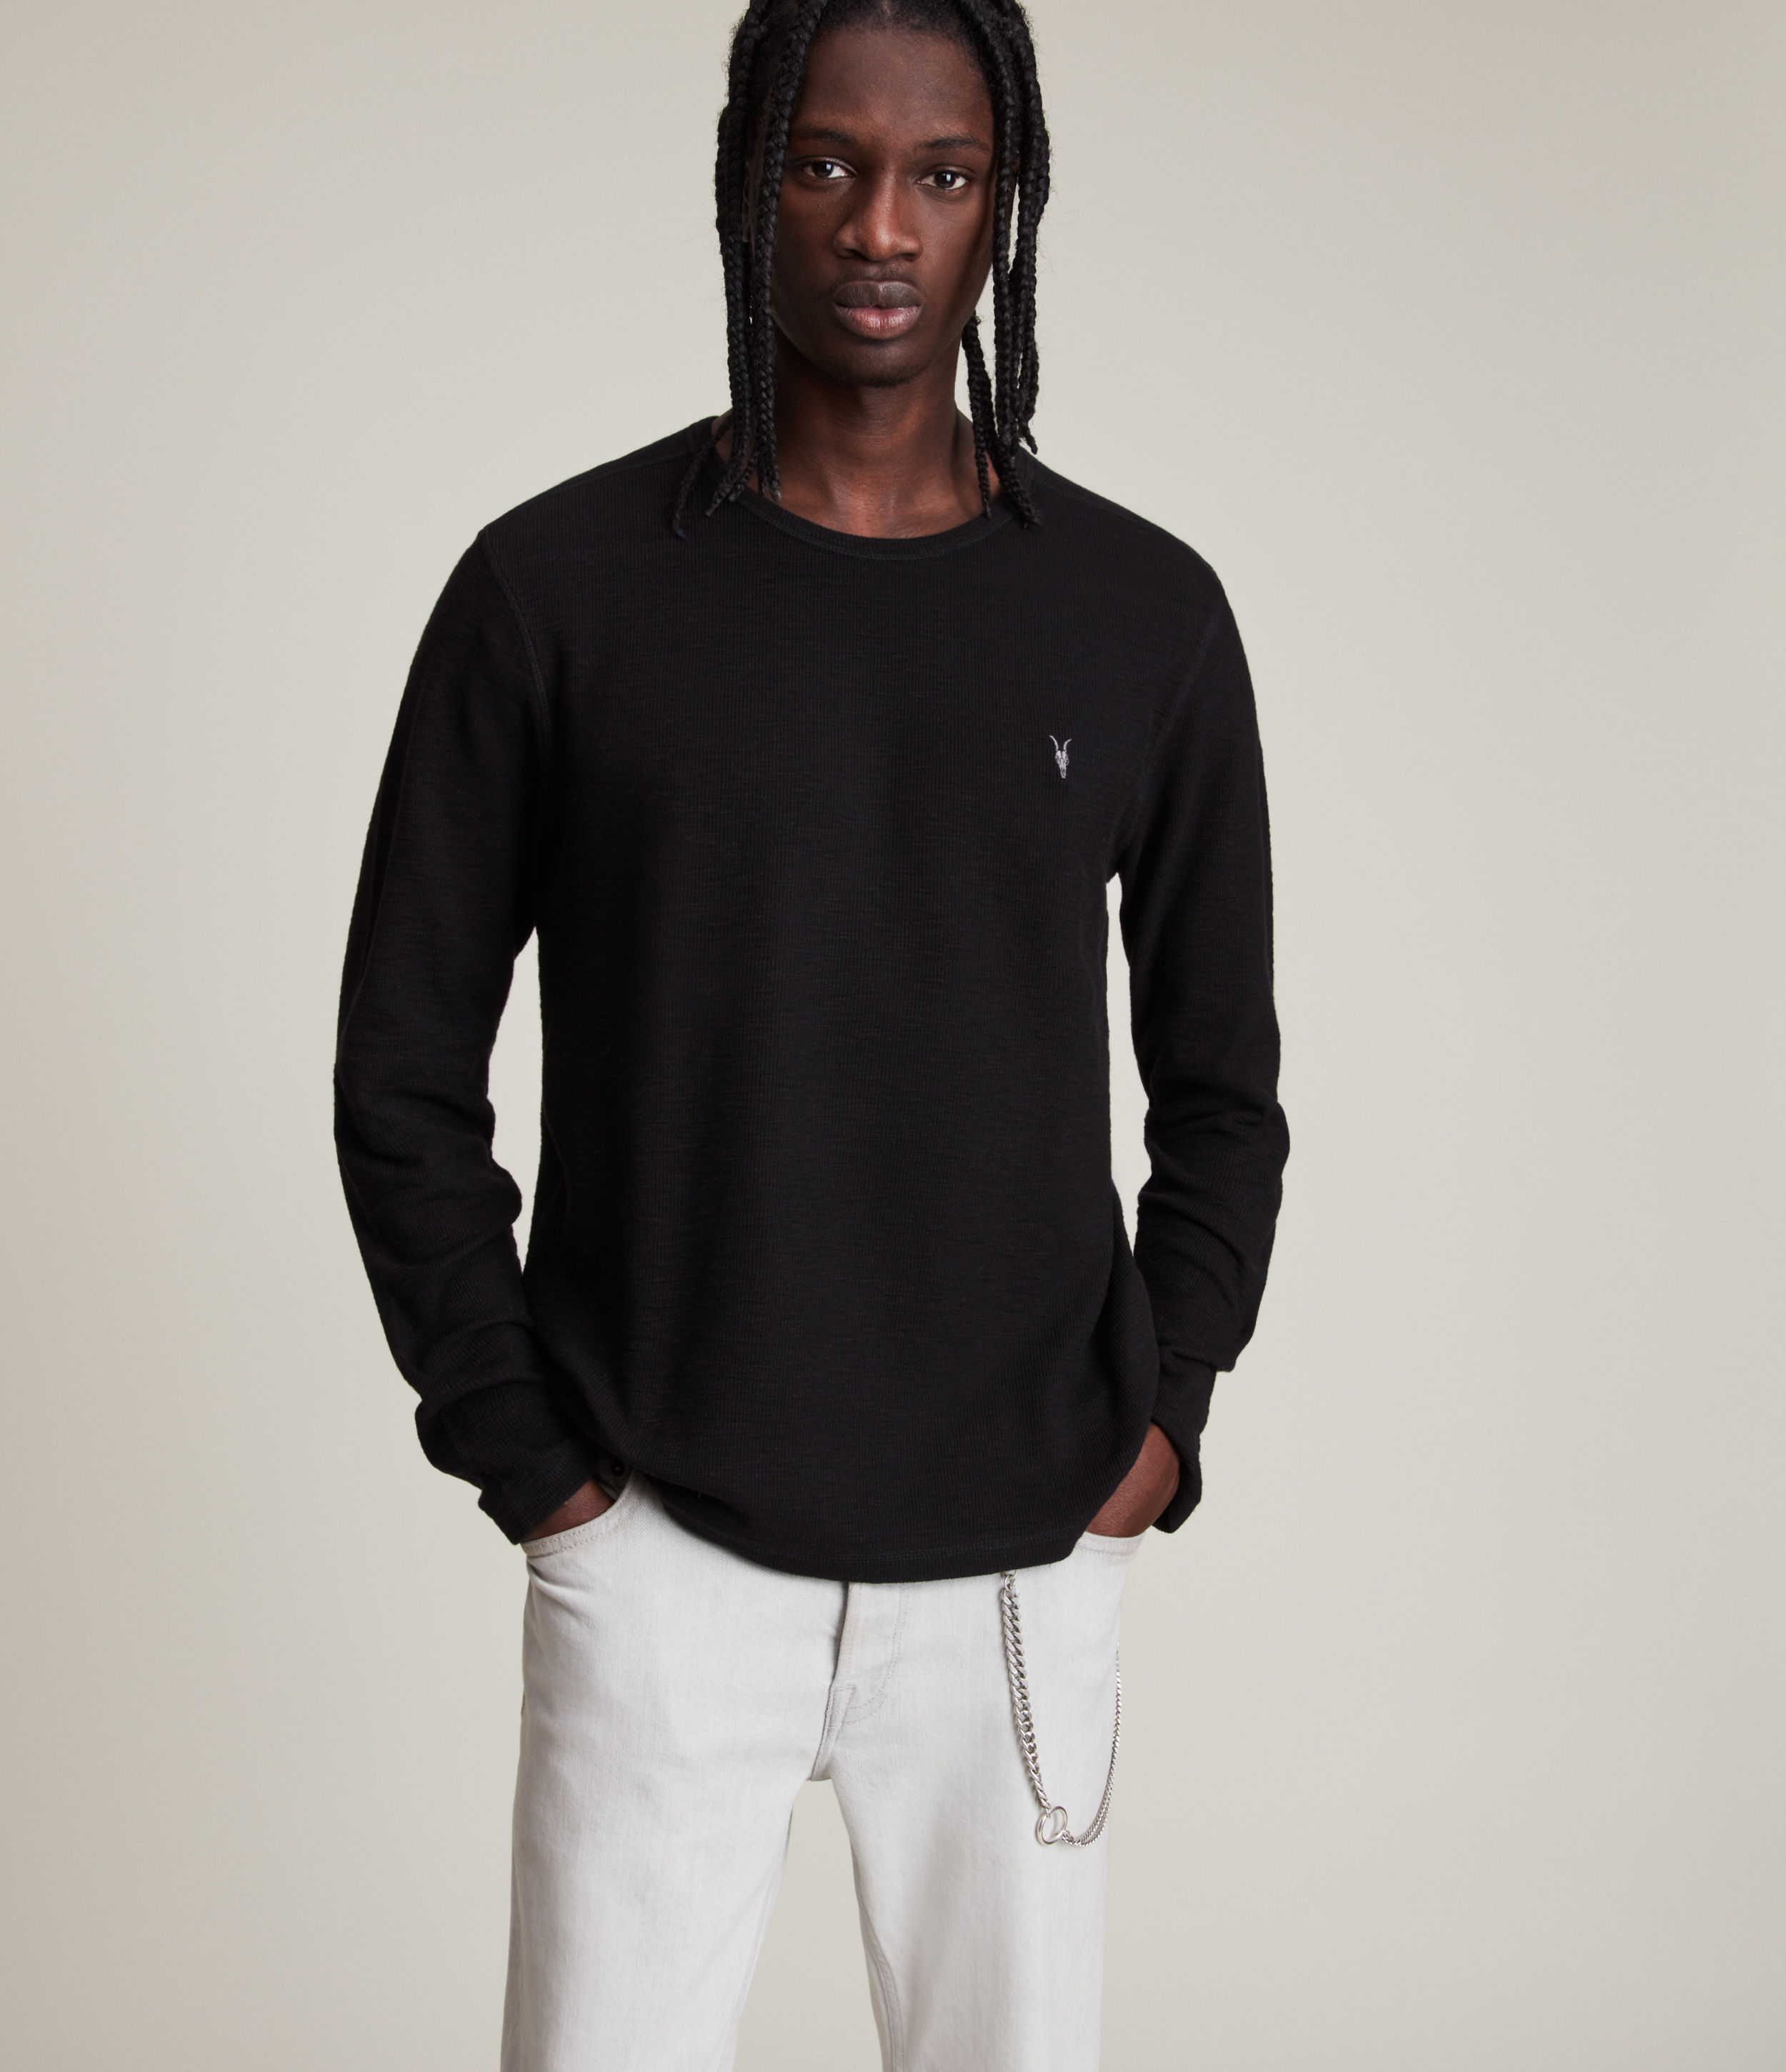 AllSaints Men's Cotton Regular Fit Muse Long Sleeve Crew T-Shirt, Black, Size: XS